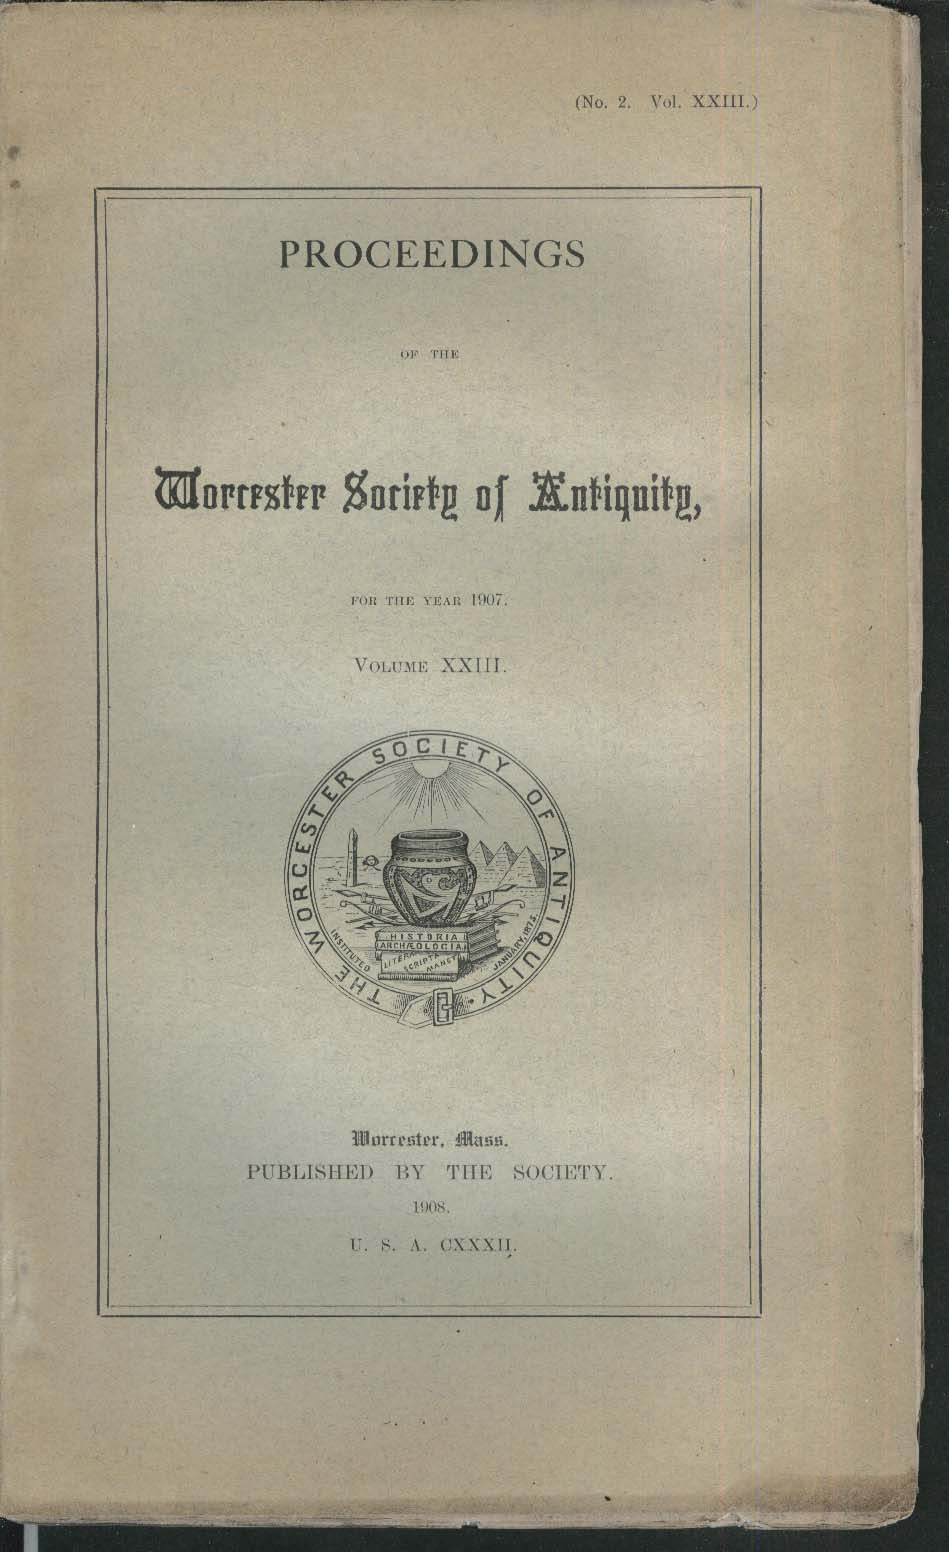 Proceedings of Worcester Society of Antiquity 1907 Vol XXIII No 2 Nathan Perry +